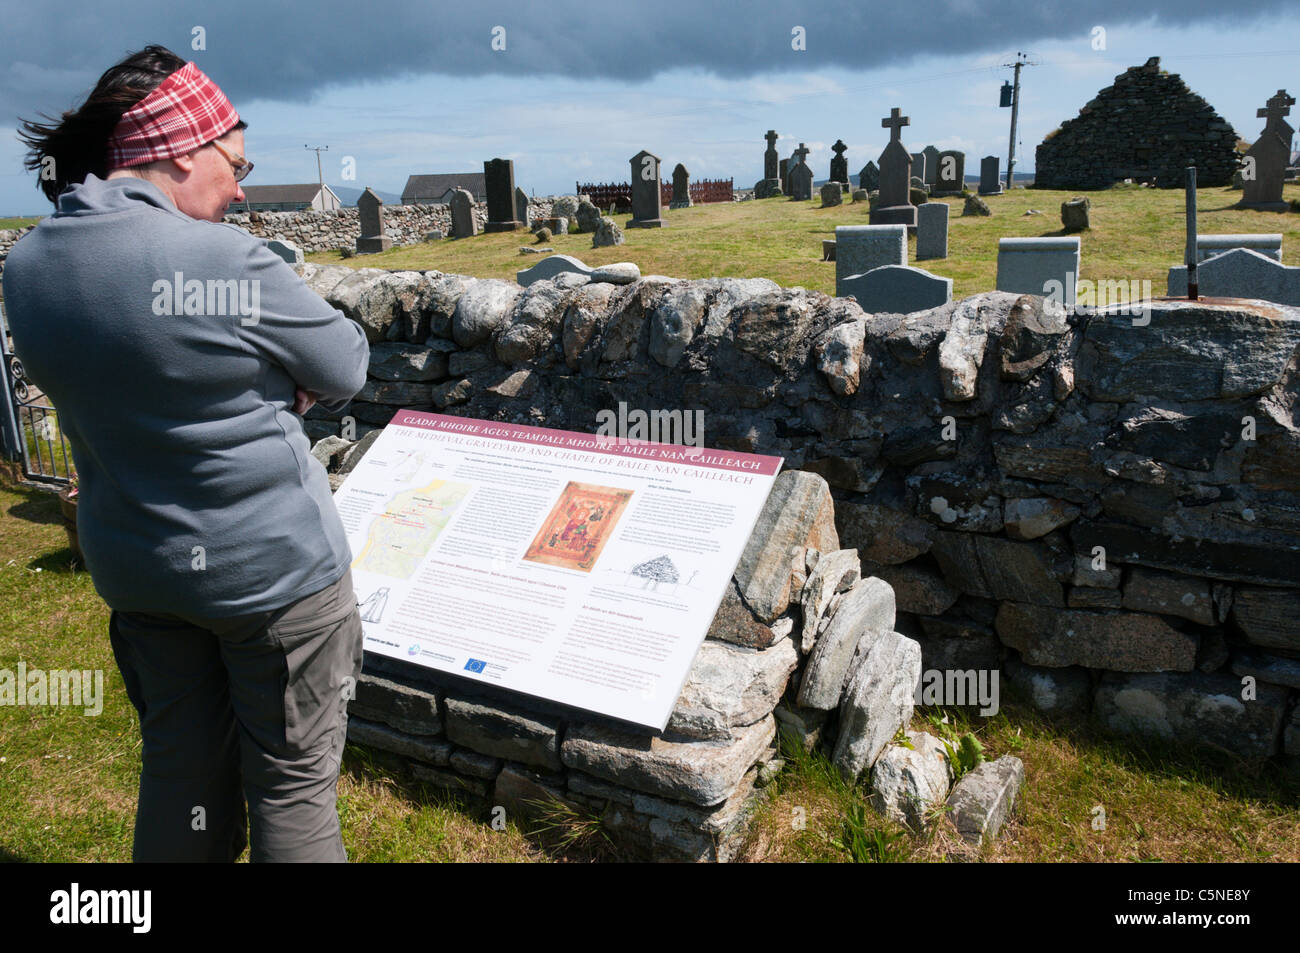 A tourist reads an interpretative sign at Cladh Mhuire chapel and graveyard on Benbecula in the Outer Hebrides Stock Photo